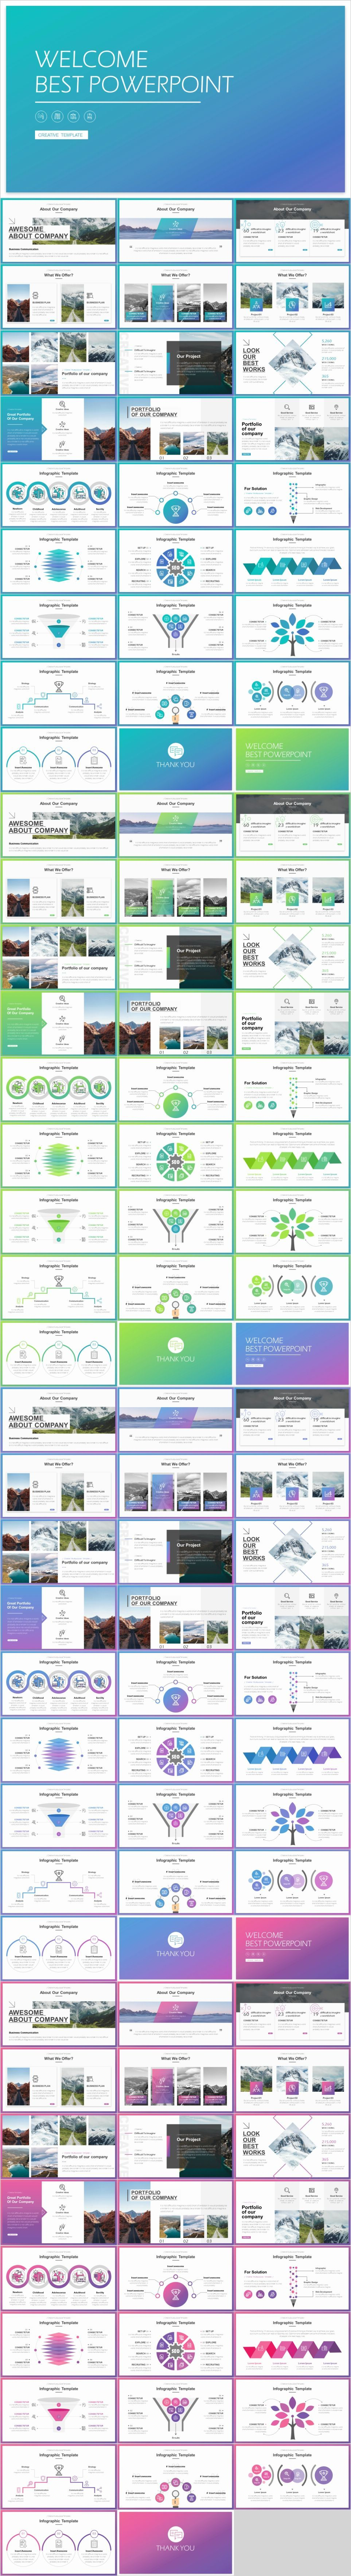 4 In 1 Business Charts Slides Template The Highest Quality Powerpoint Templates And Keynote In 2020 Business Infographic Design Business Infographic Keynote Template